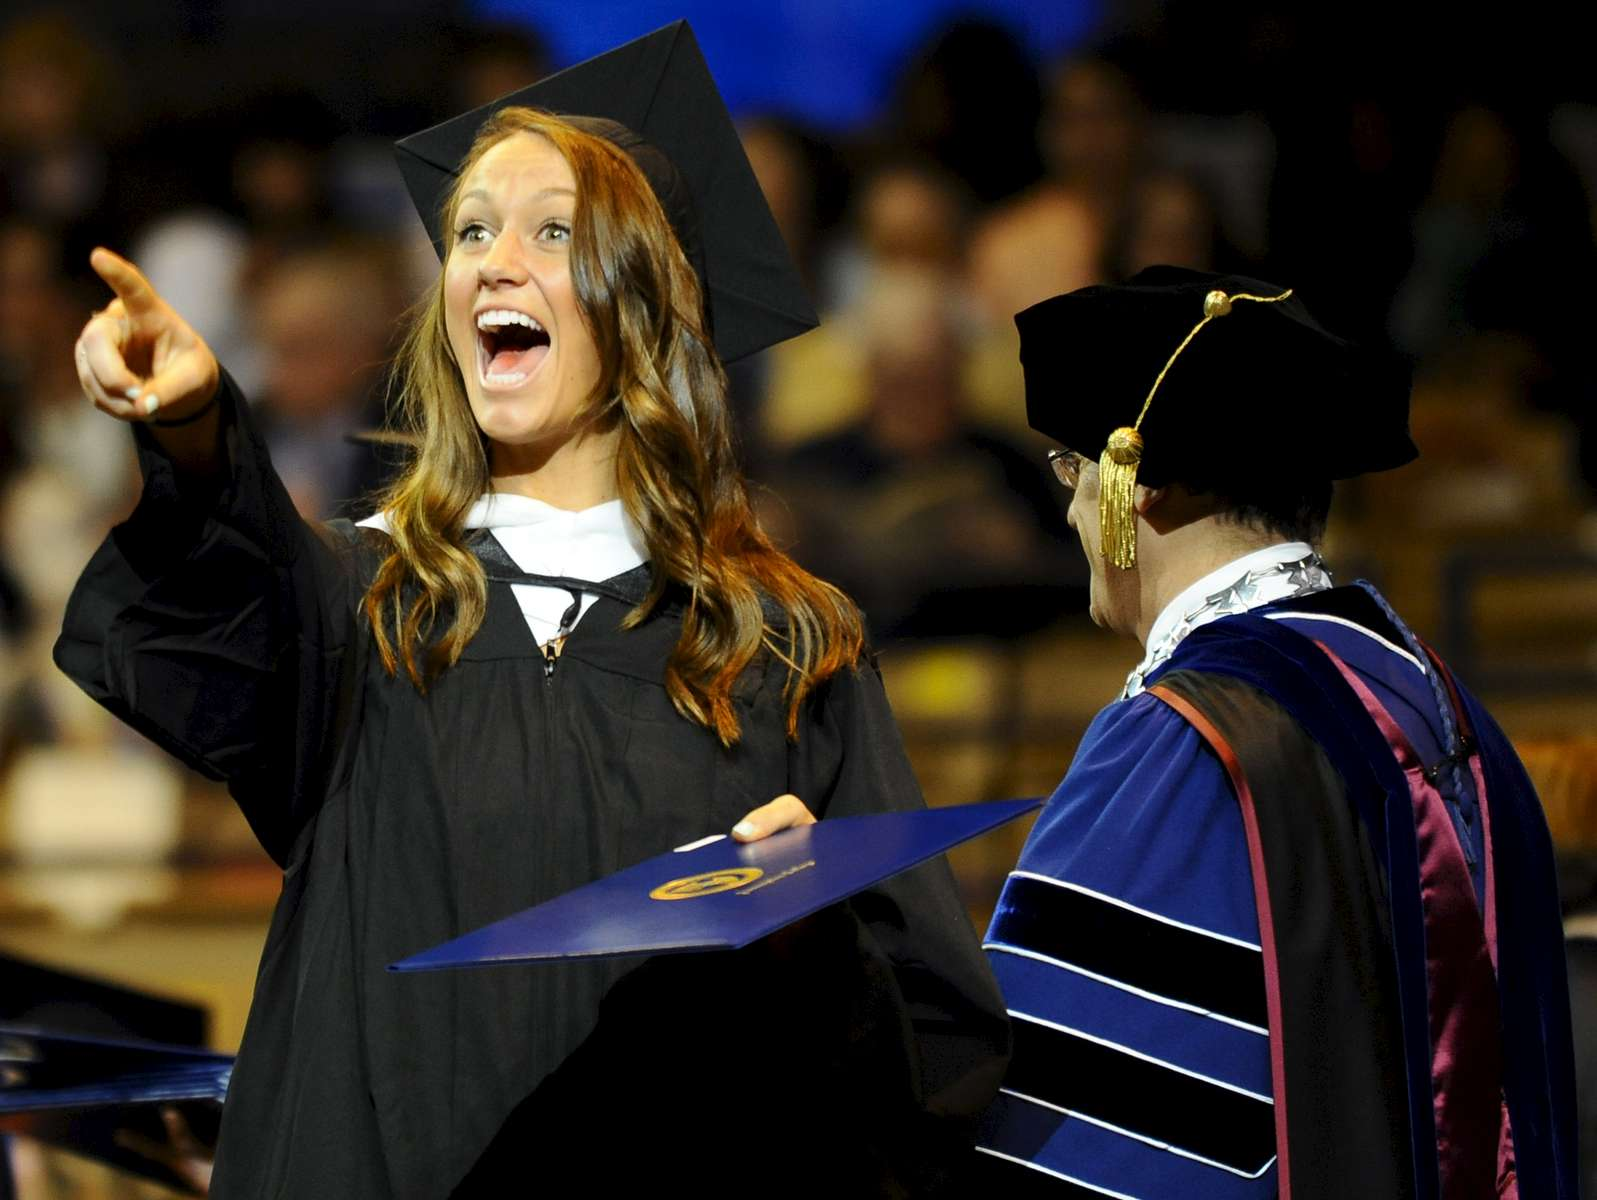 Assumption College graduate Meghan Campbell excitedly gestures to a loved one after receiving her diploma on Saturday, May 7, 2016.